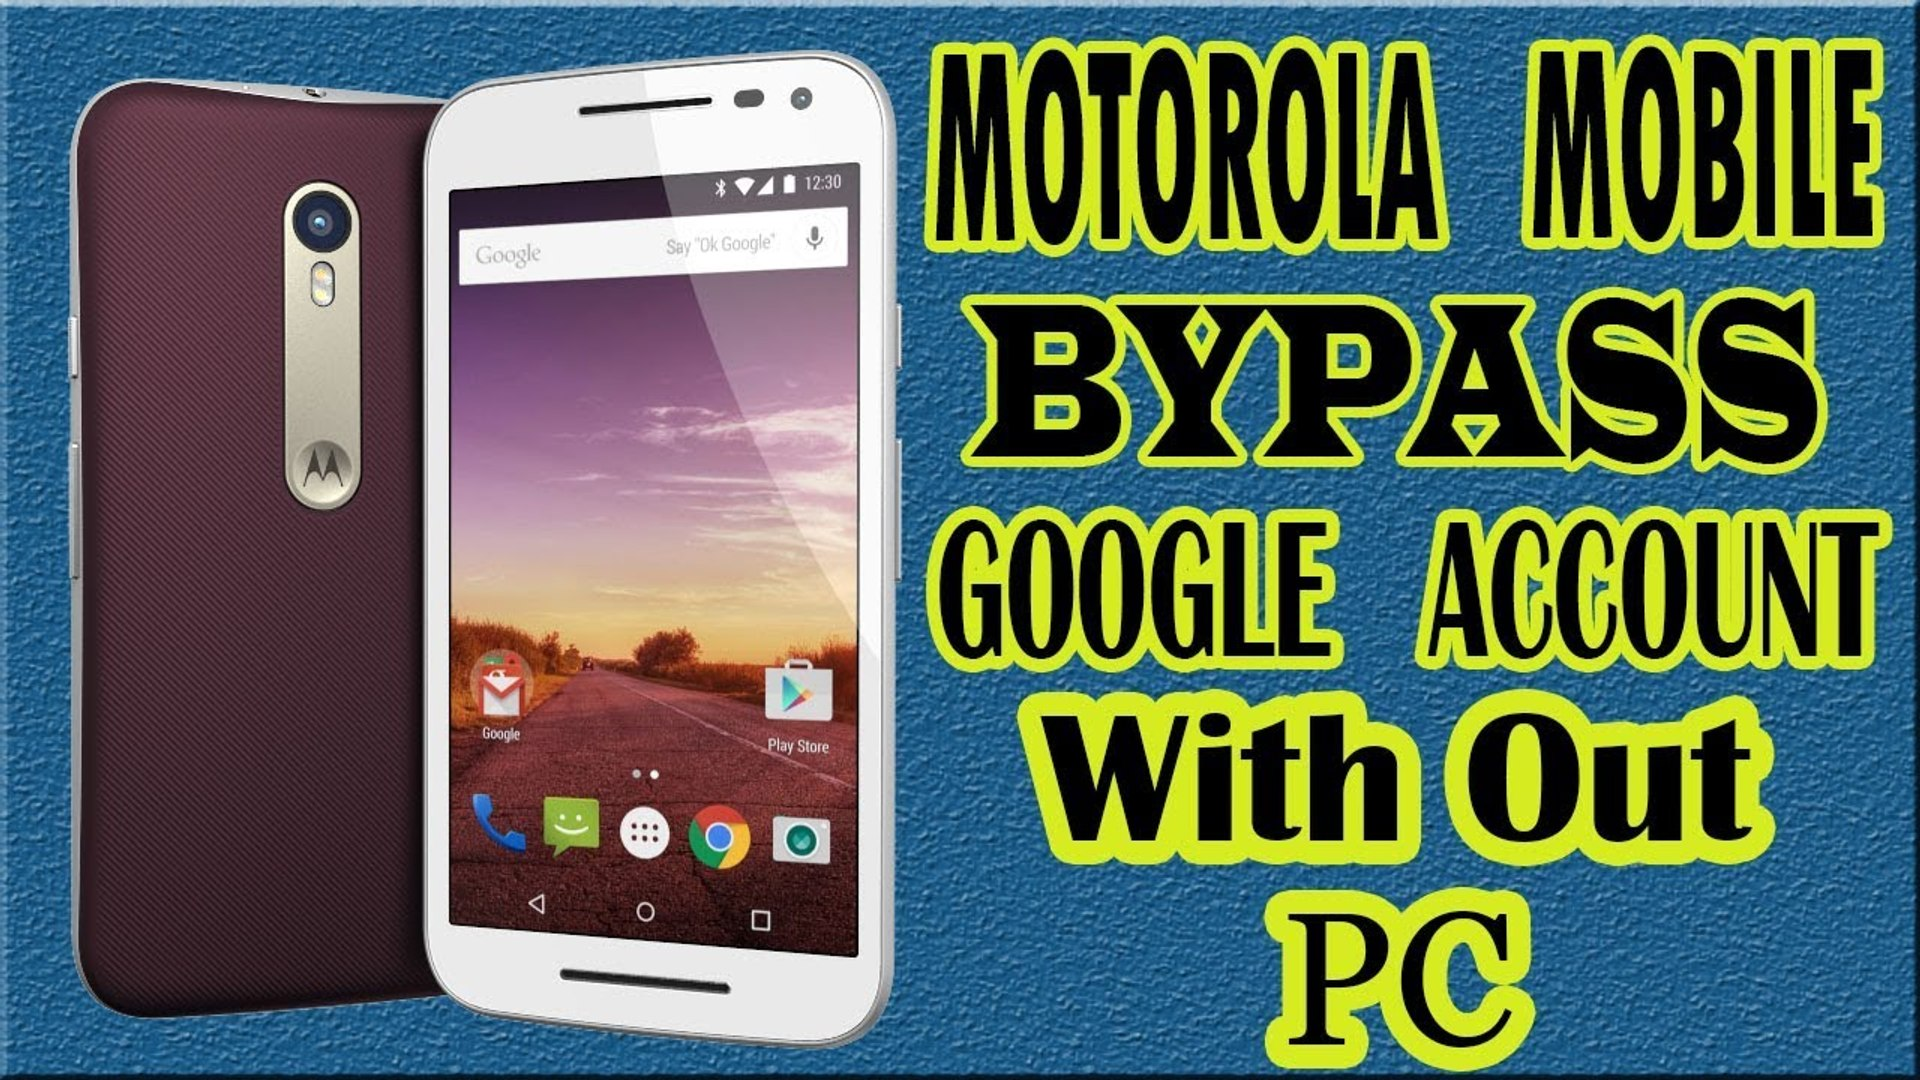 How To Bypass Google Account - Motorola Phone Moto G 3rd Generation - Easy  Way To Bypass Verification Motorola Devices 2017